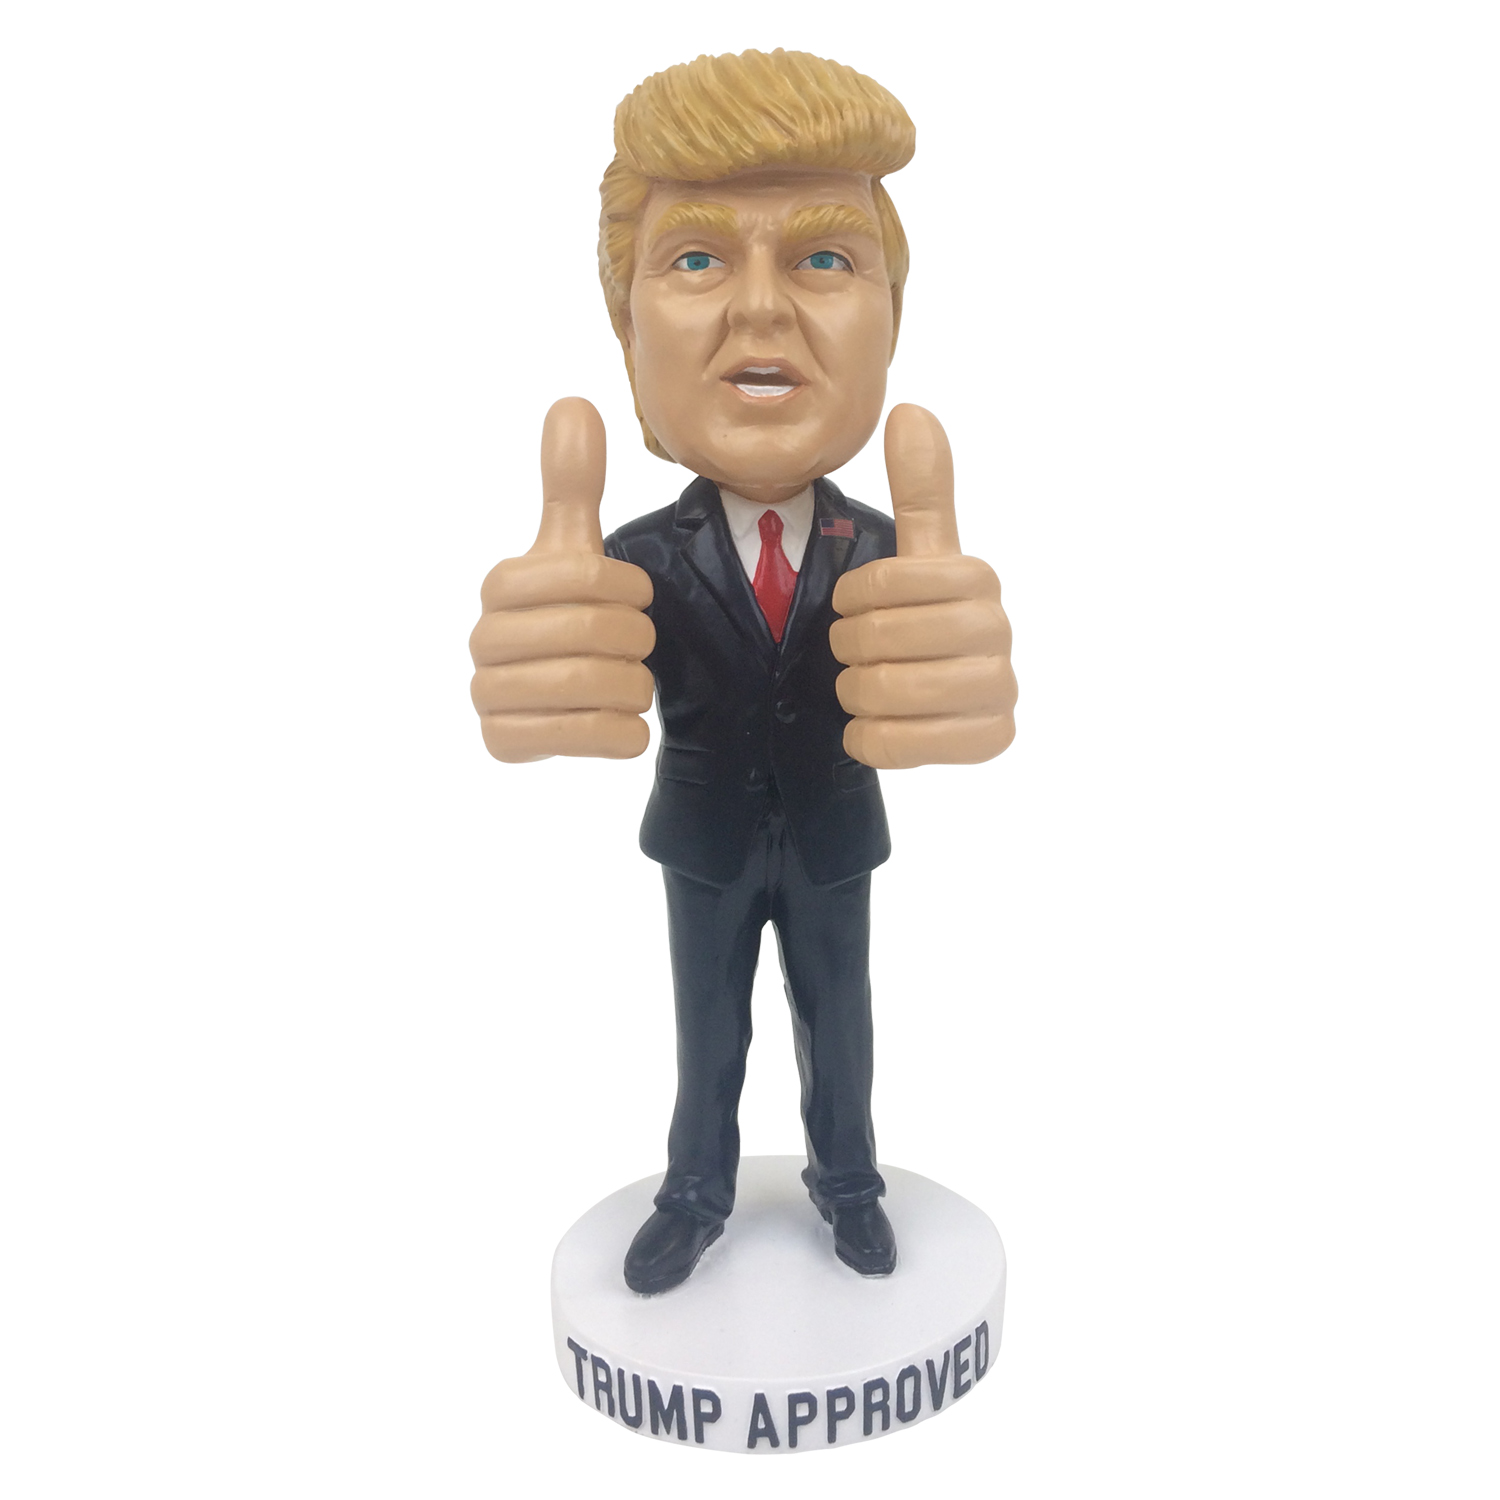 President Donald Trump Thumbs Up Bobblehead Gallery